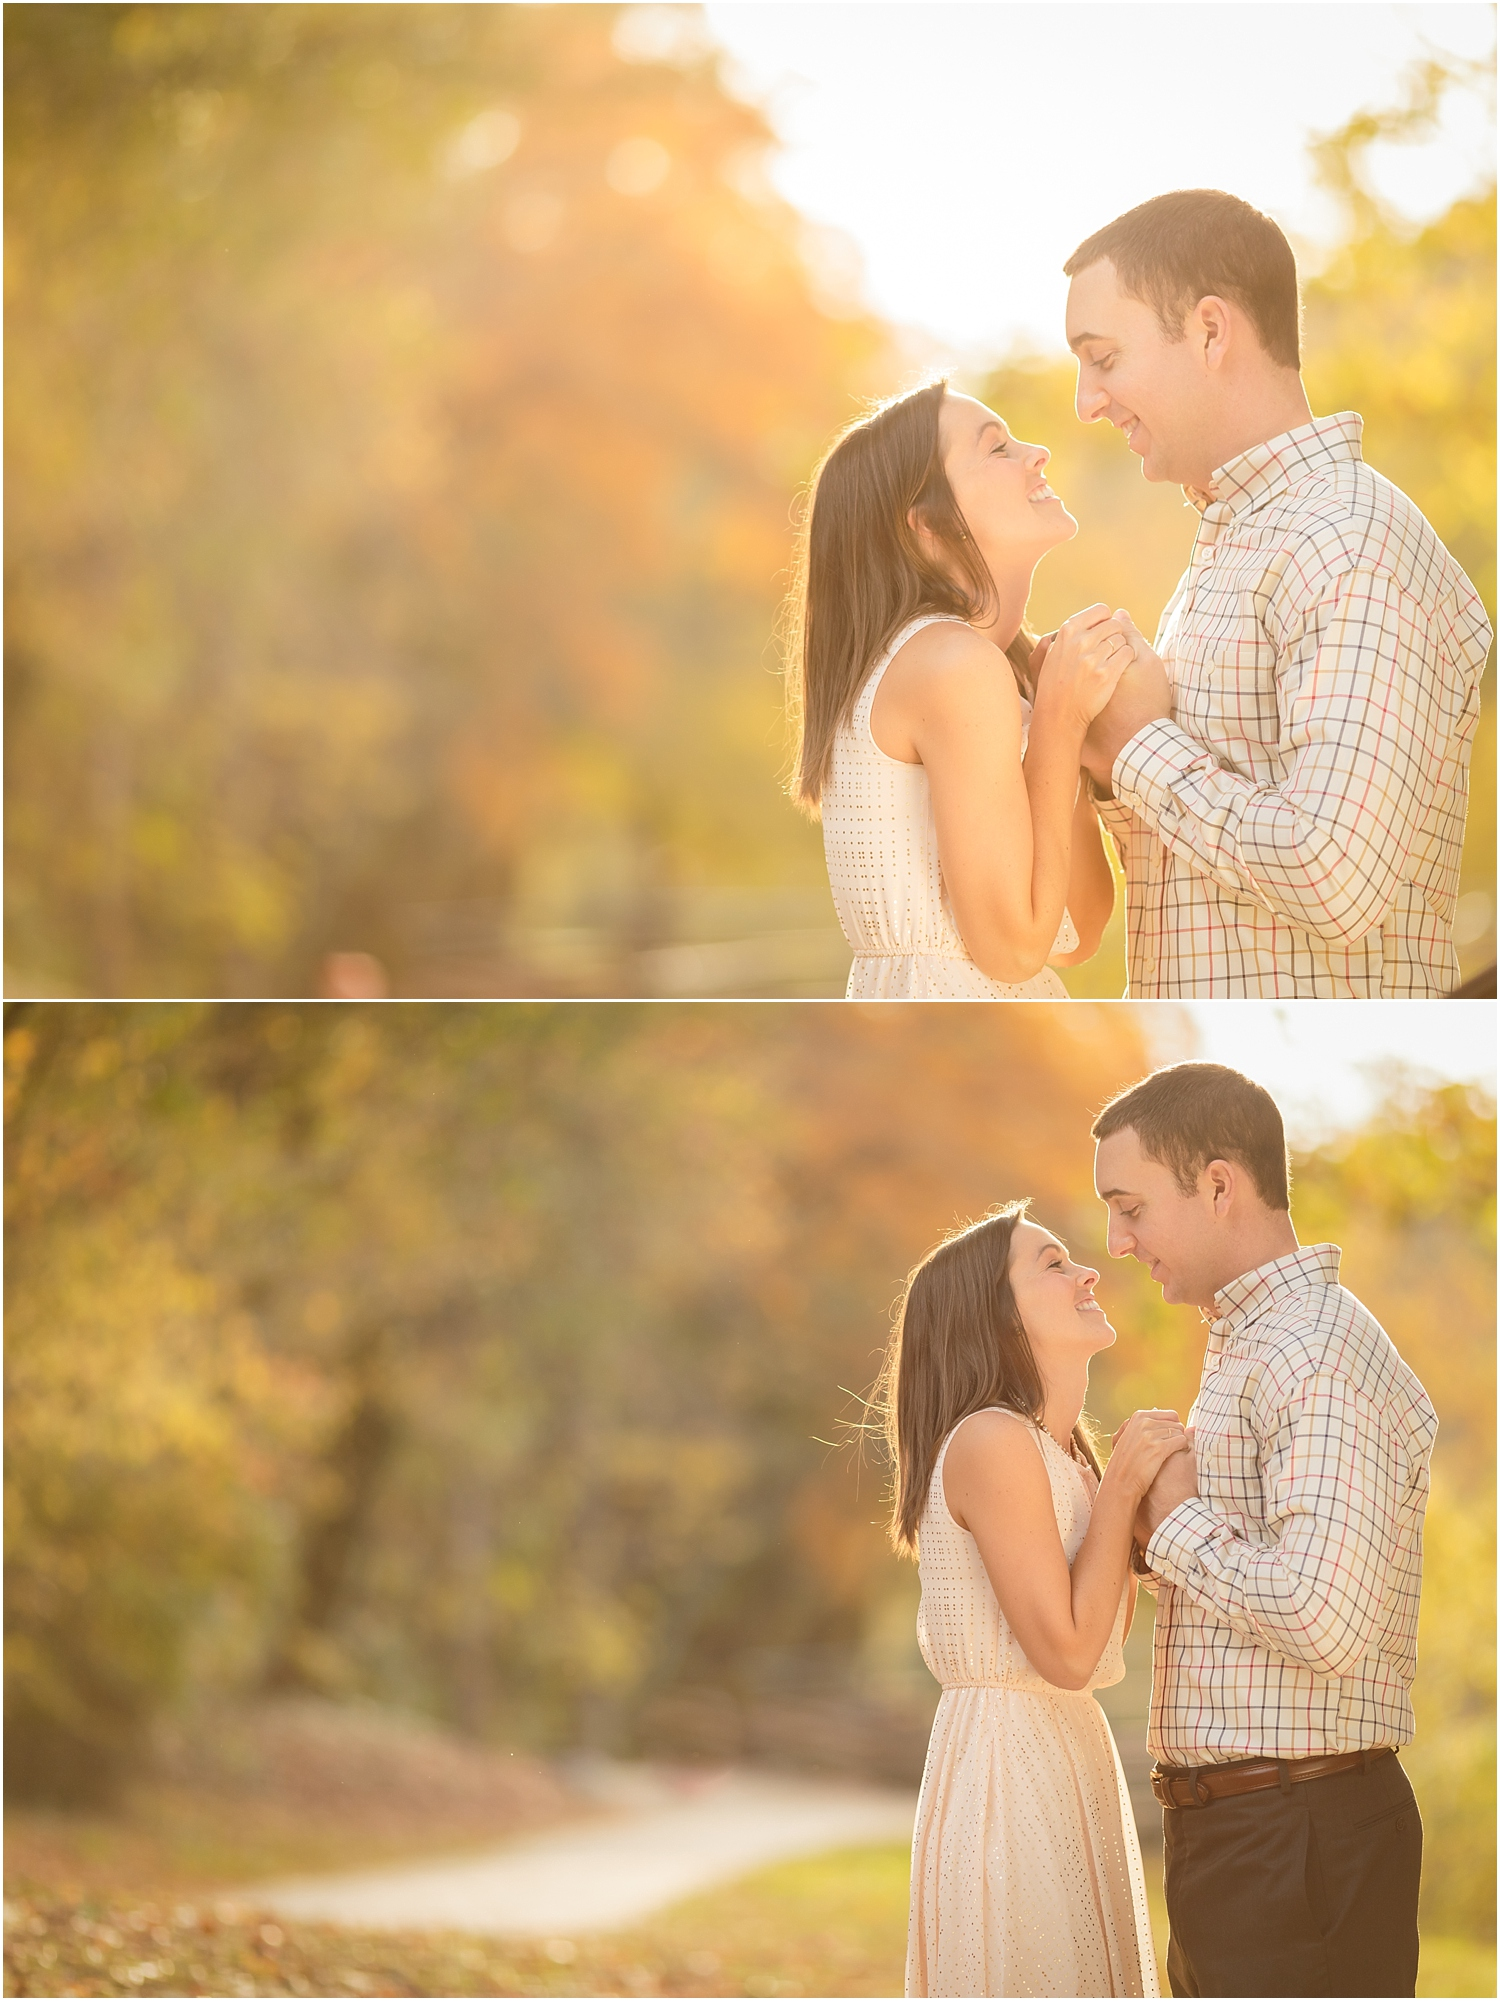 fall-engagement-session-downtown-greenville-photography-14_blog.jpg